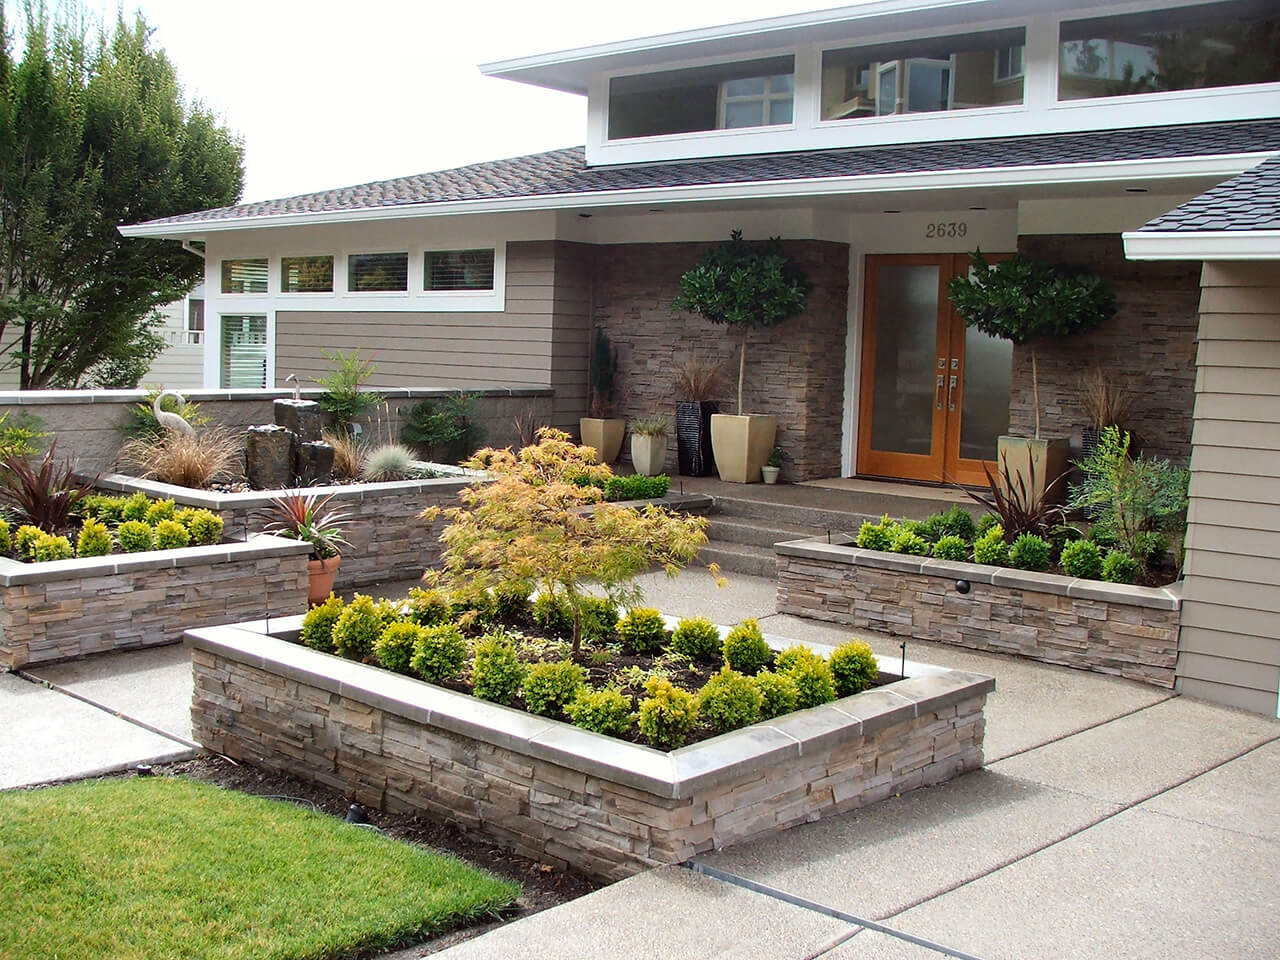 50 best front yard landscaping ideas and garden designs for Lawn landscaping ideas